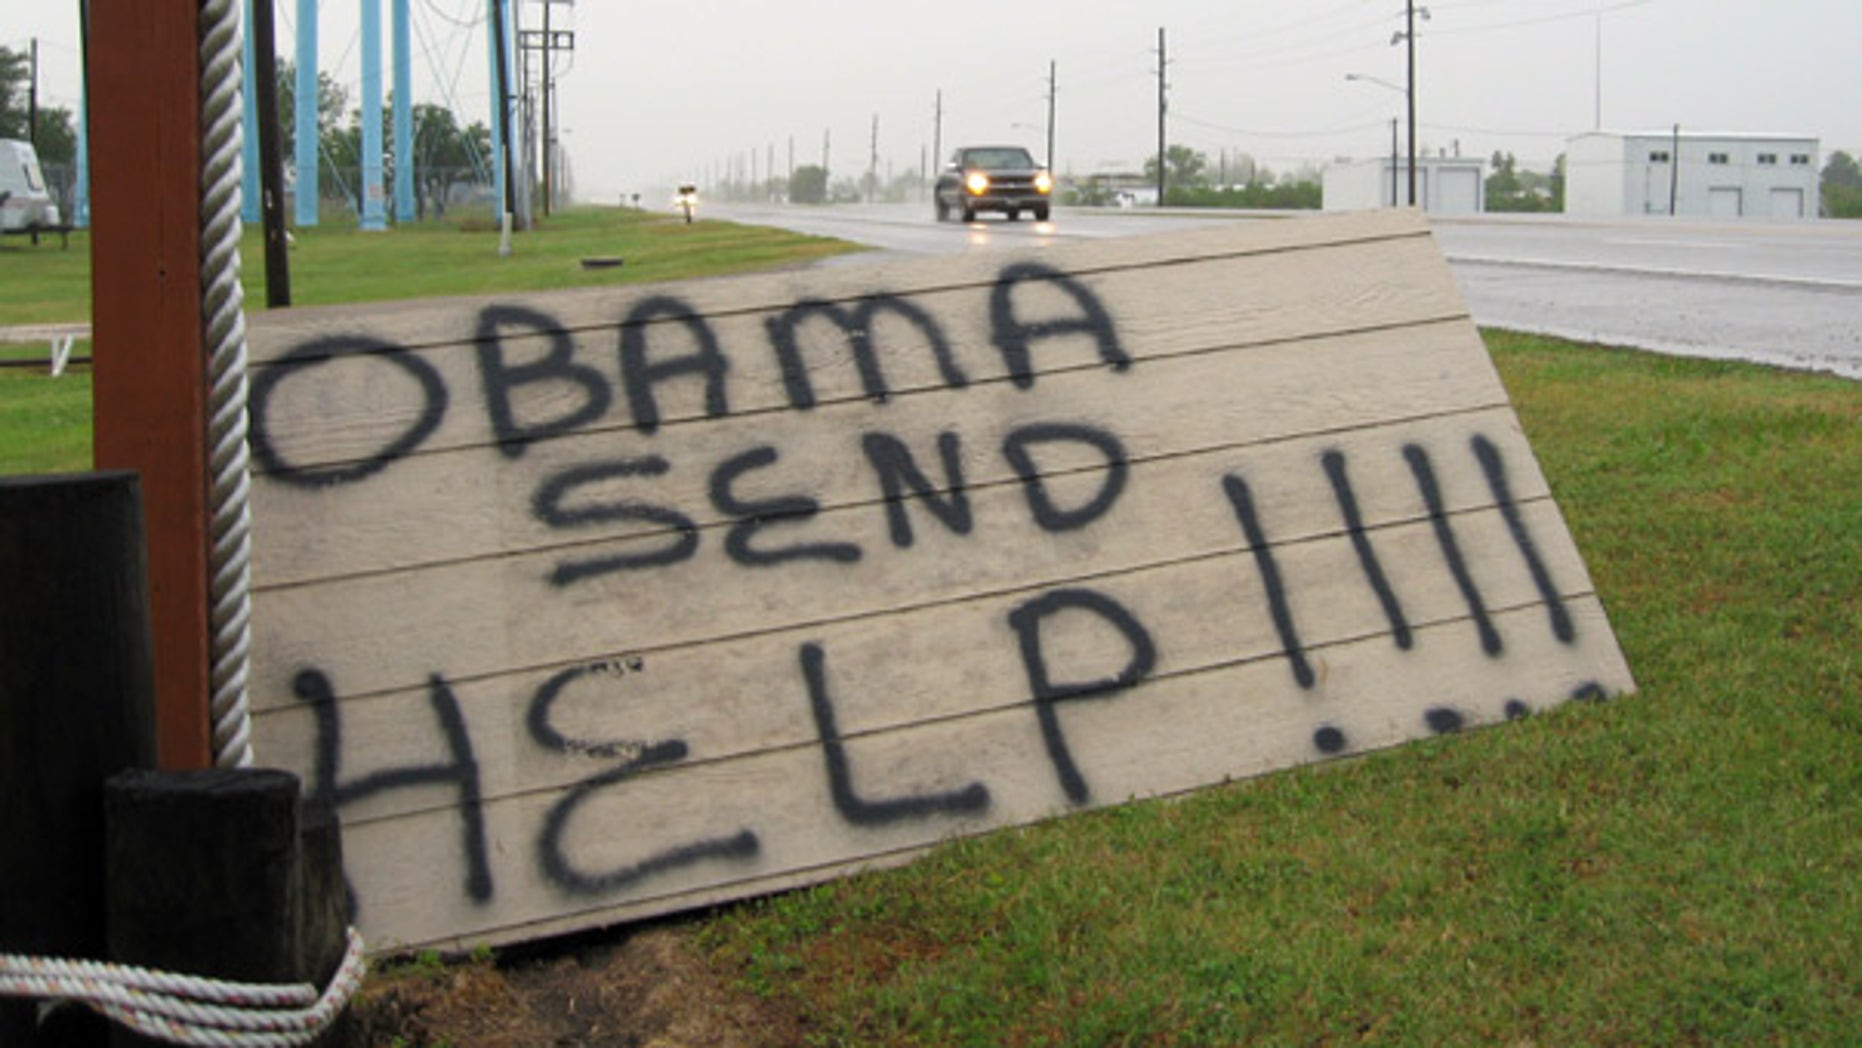 May 2: A sign on the side of a road in Boothville, La. calls for help to combat the massive Gulf oil spill.